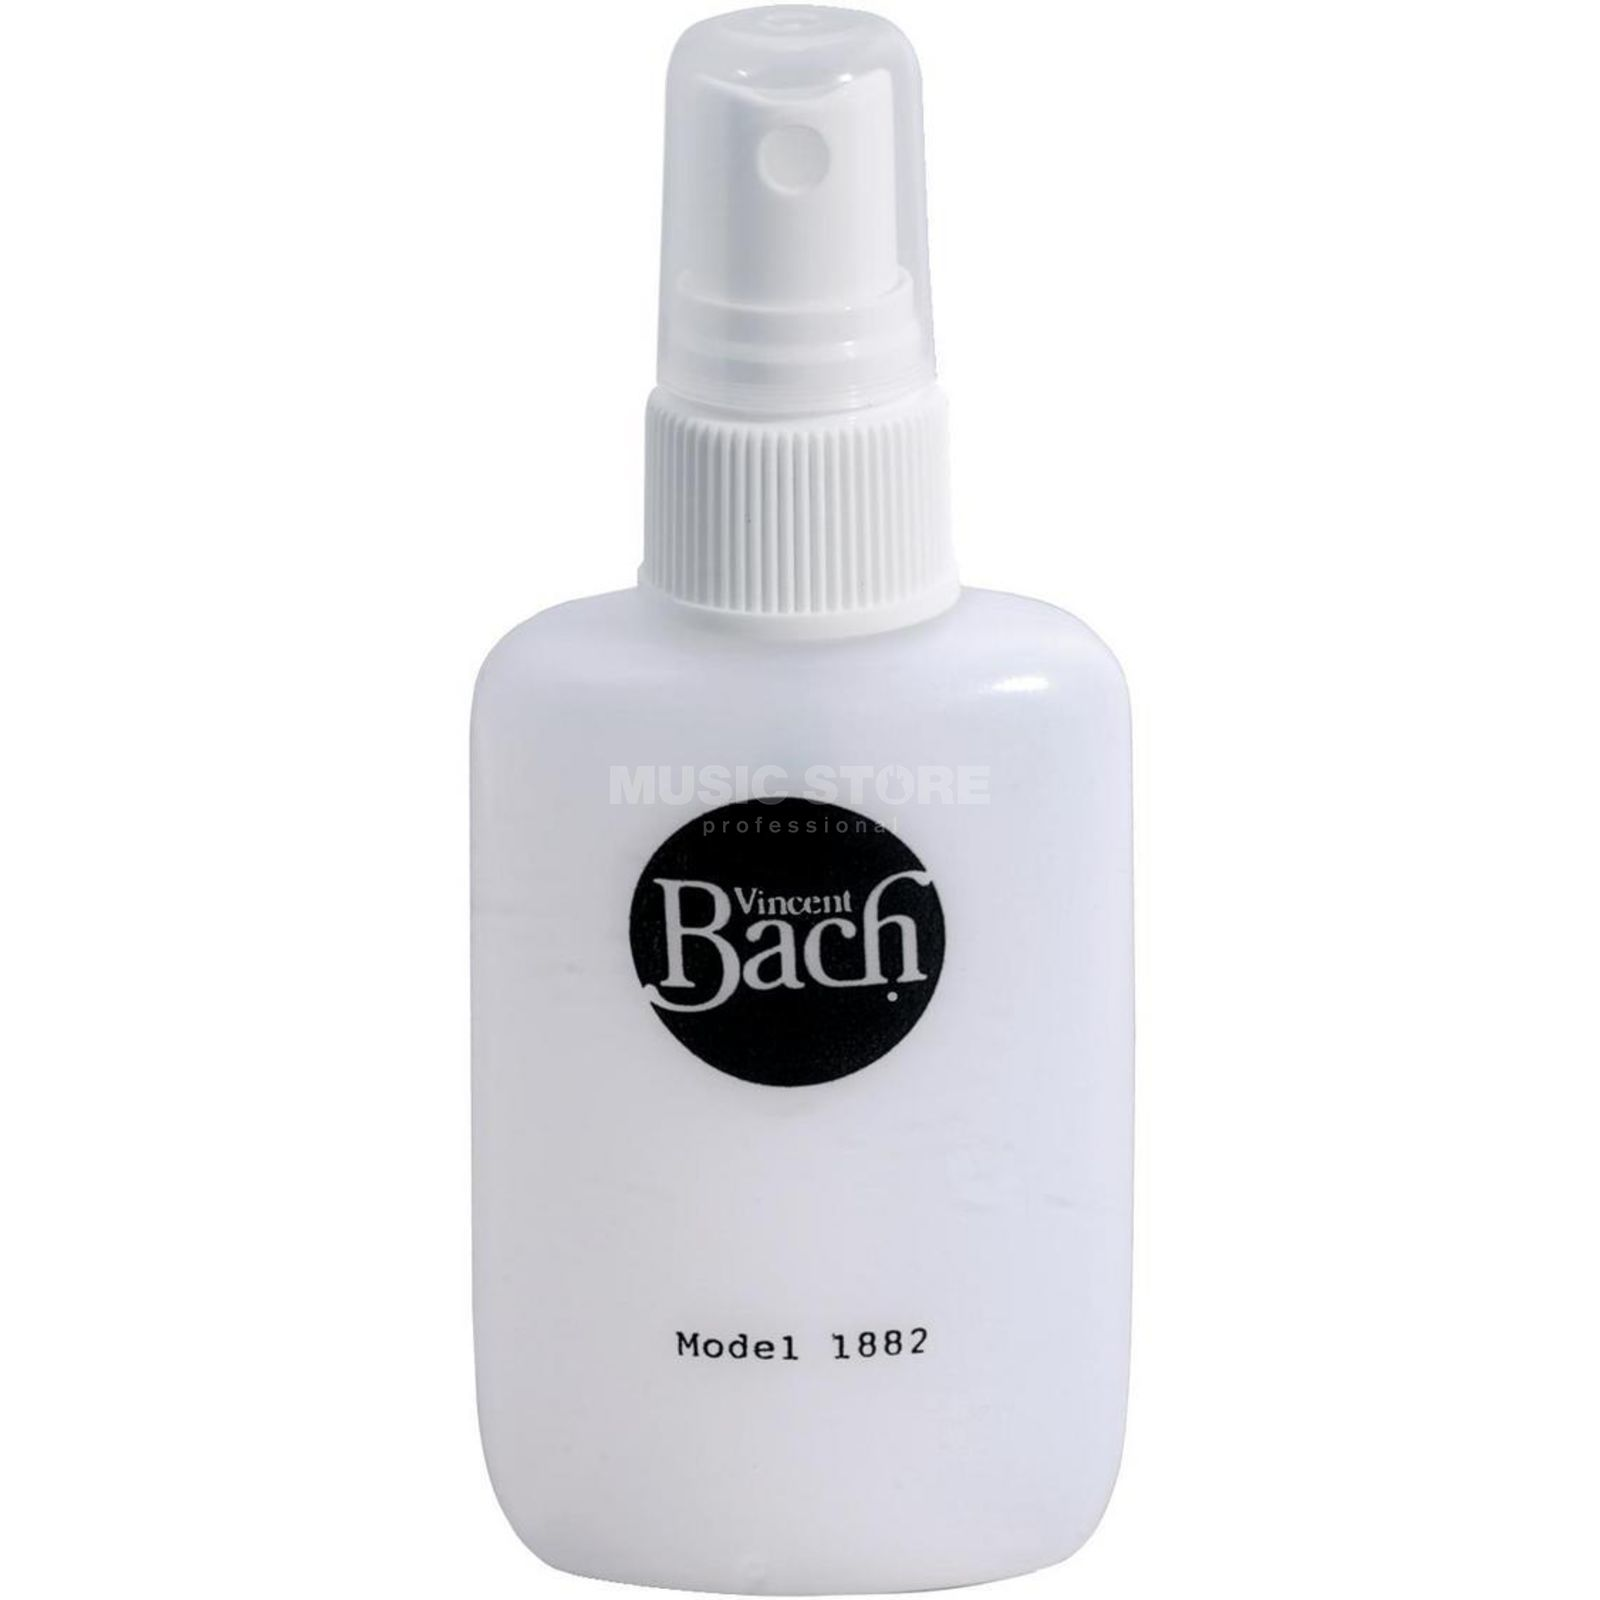 BACH Empty Sprax Bottle as Replacement for Cleaning Kit Image du produit